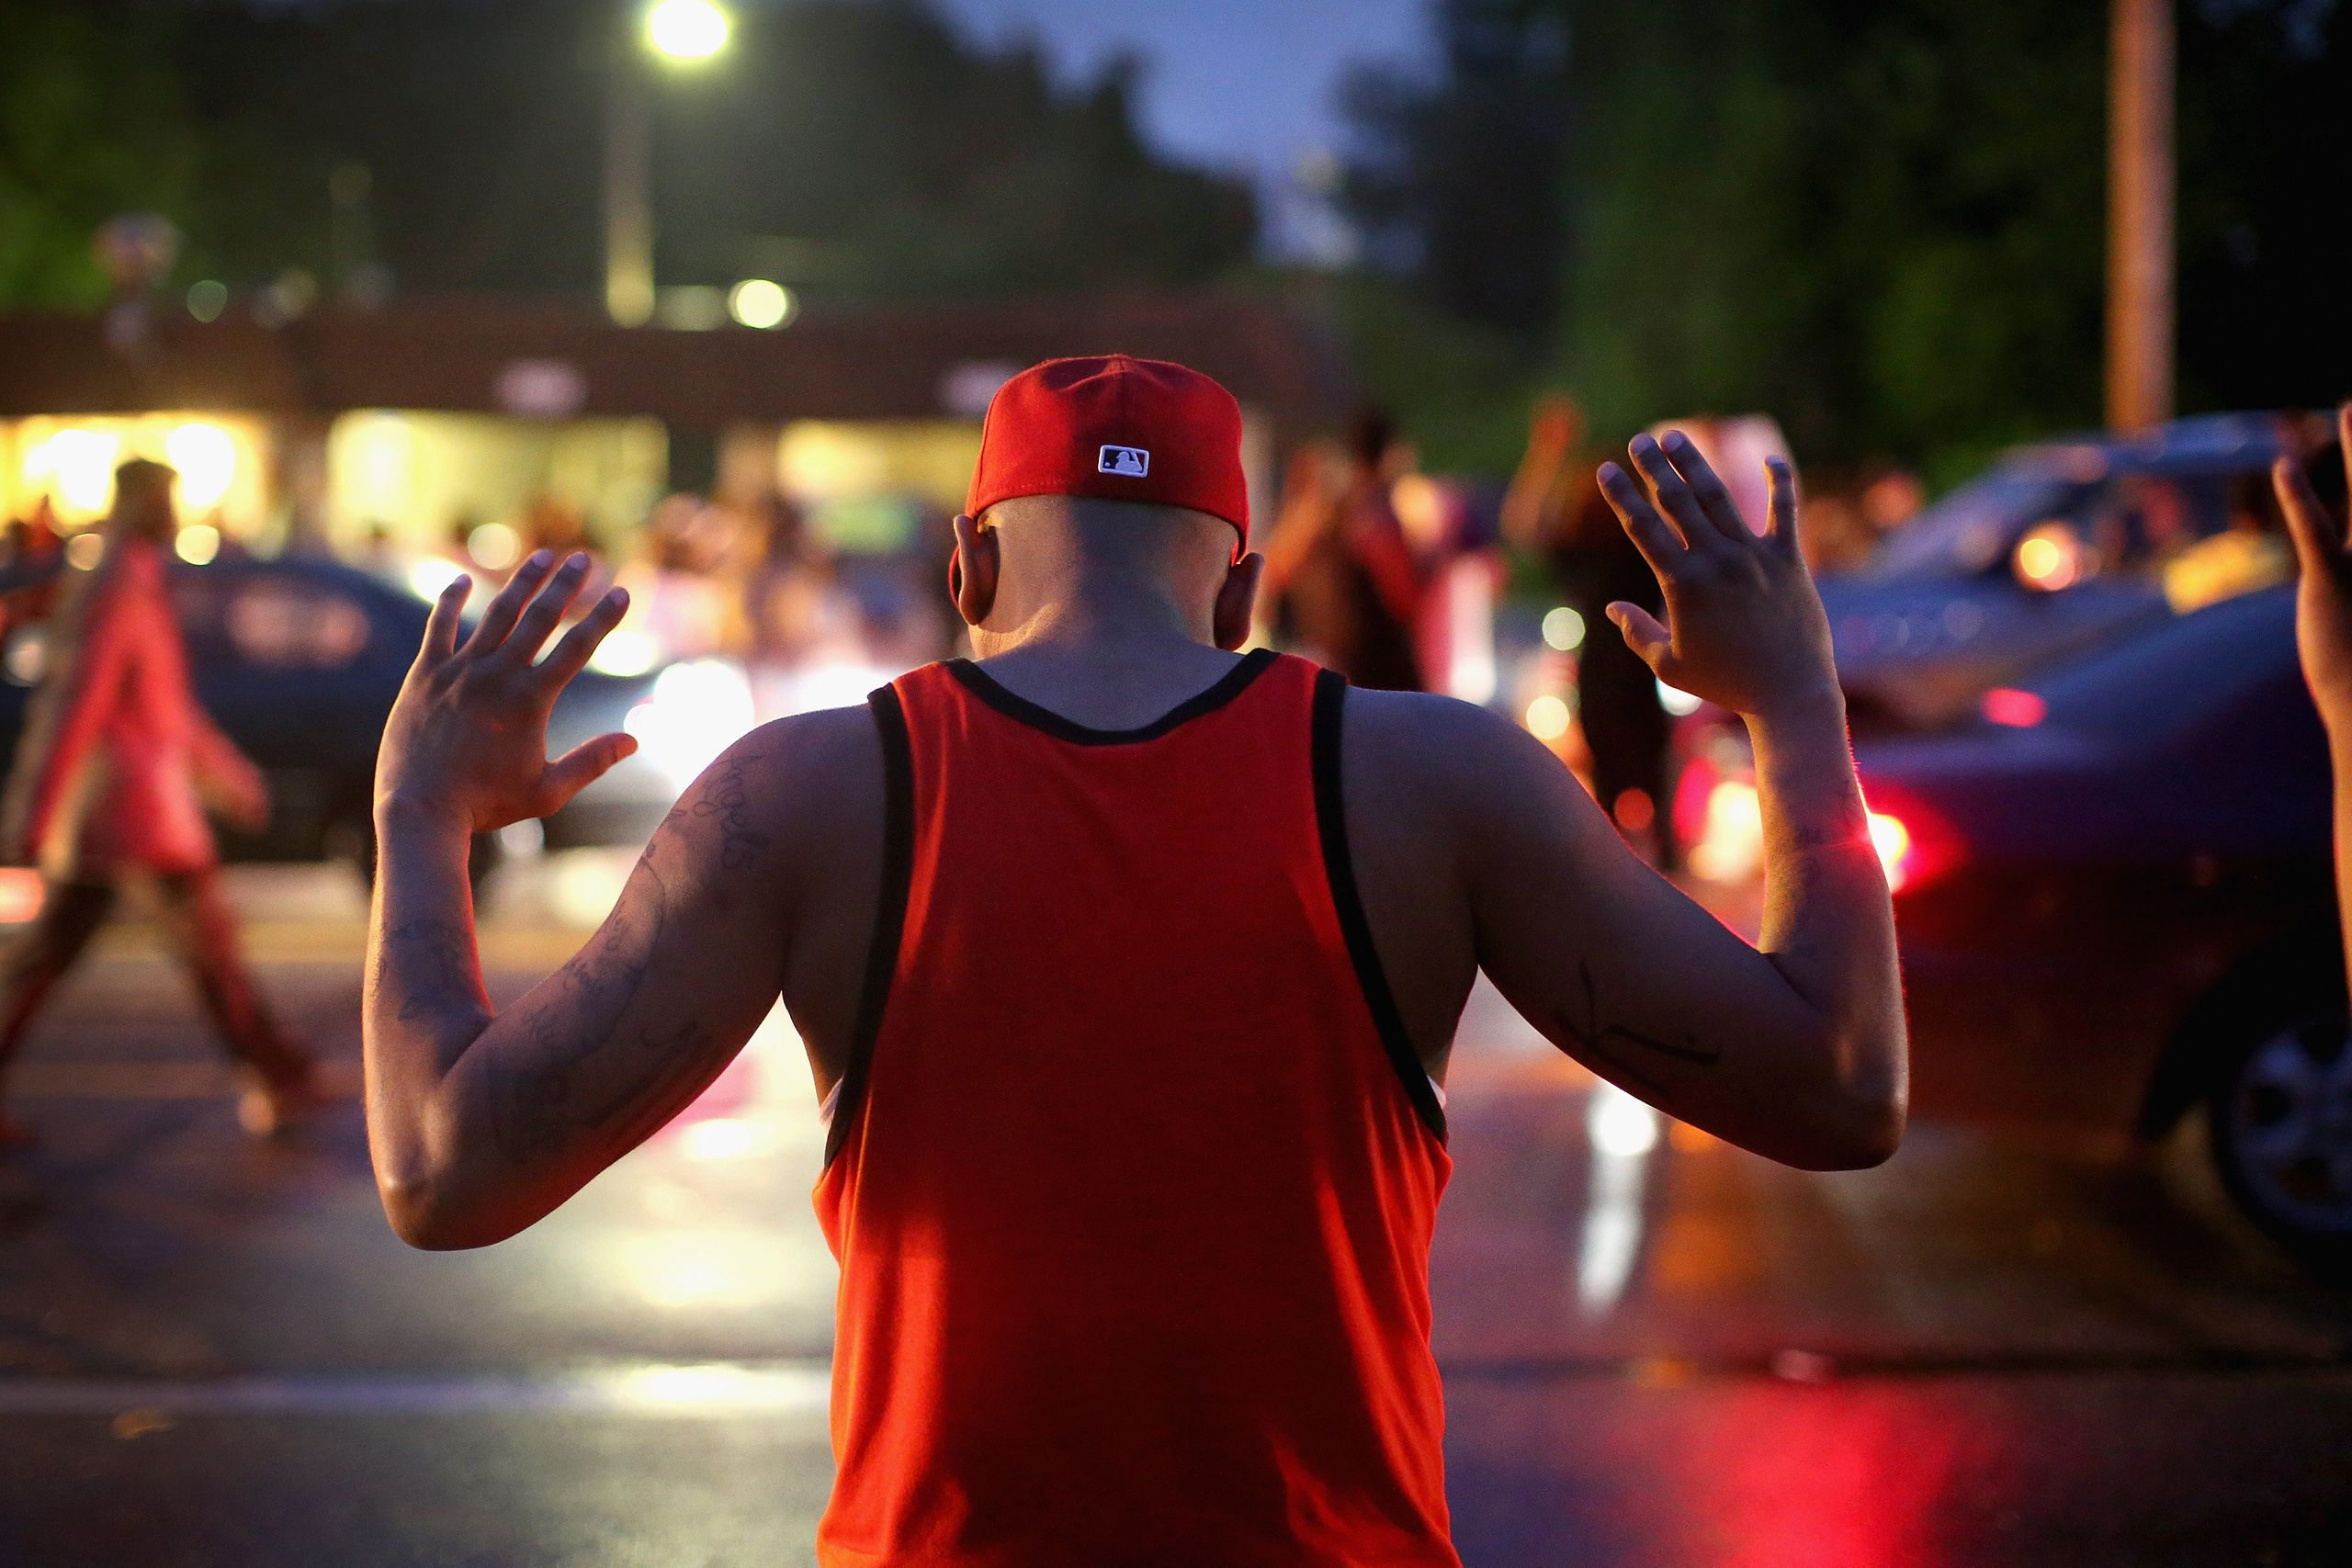 Demonstrators gather along West Florissant Avenue in Ferguson on Aug. 15, 2014.